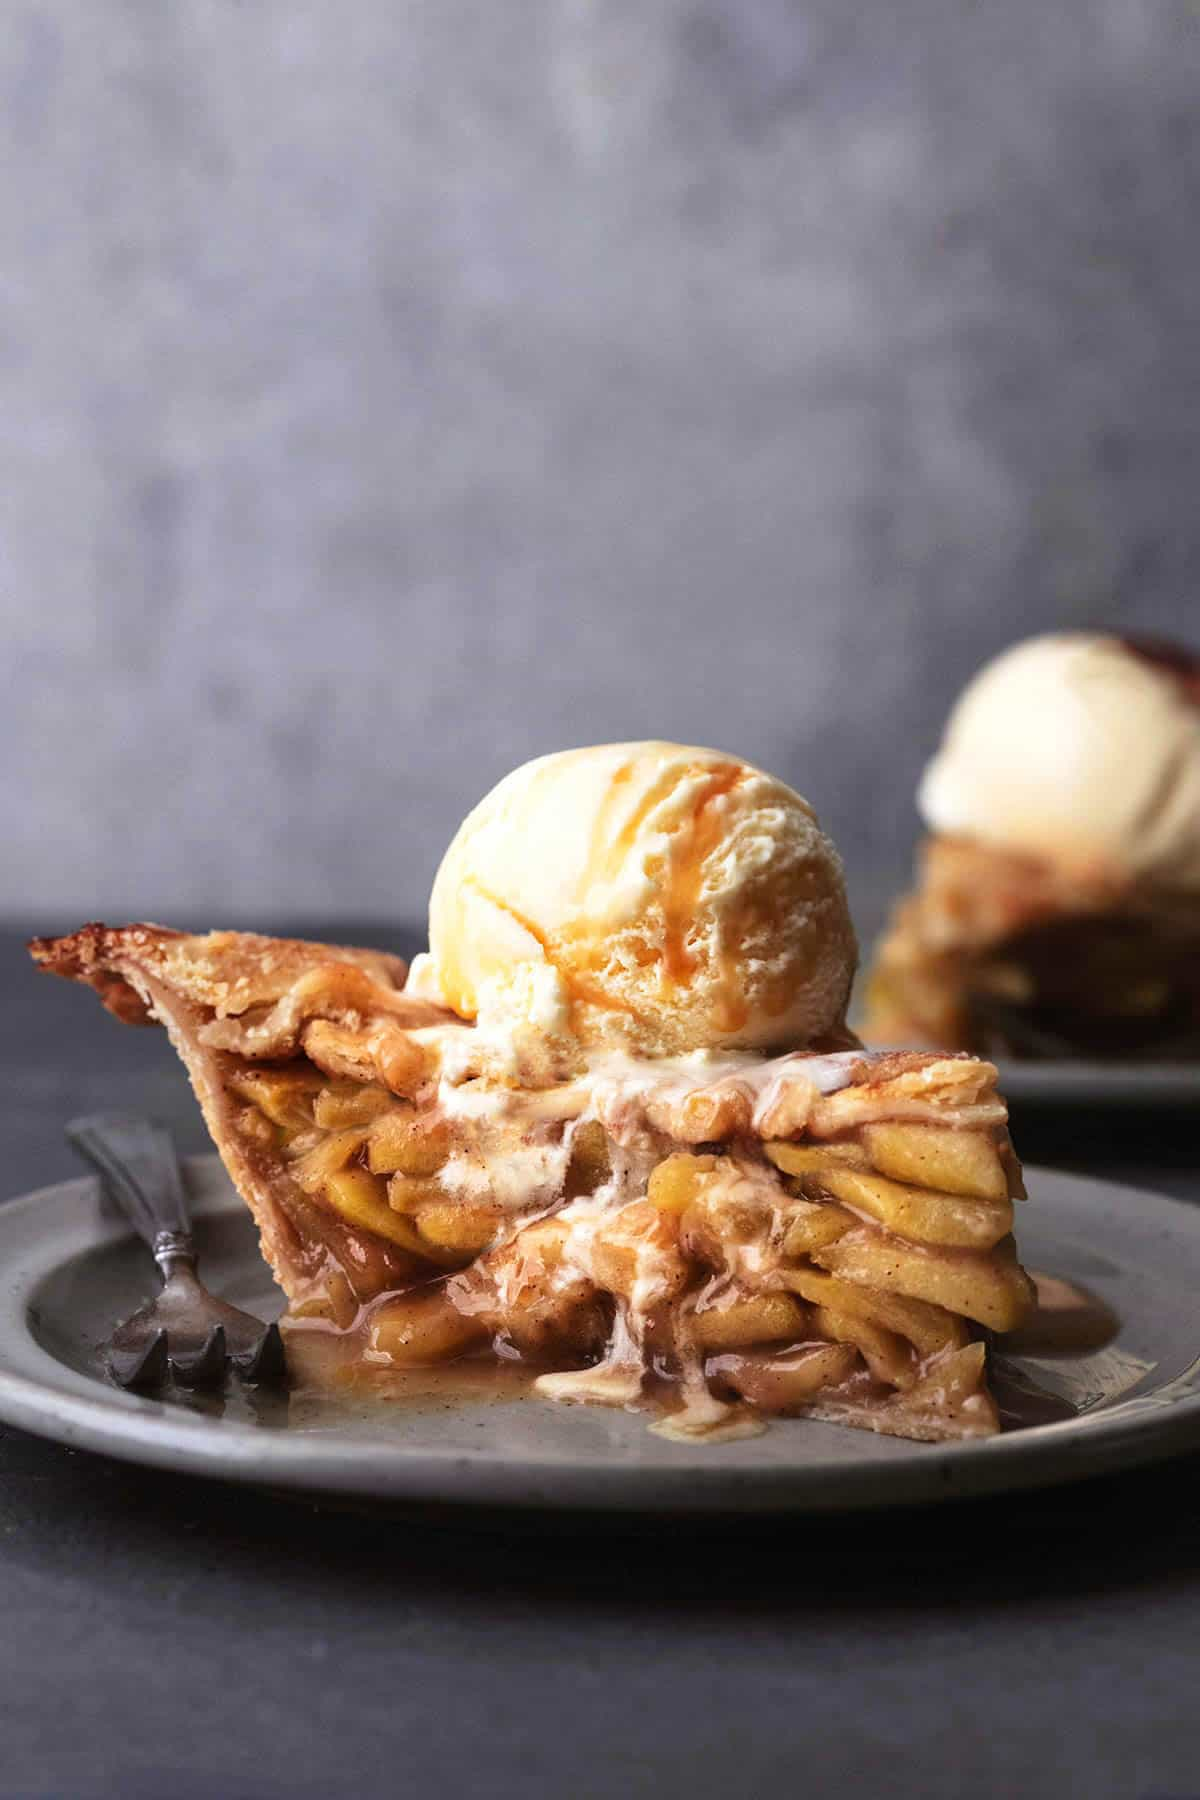 tabletop view of slice of apple pie with ice cream scoop on top